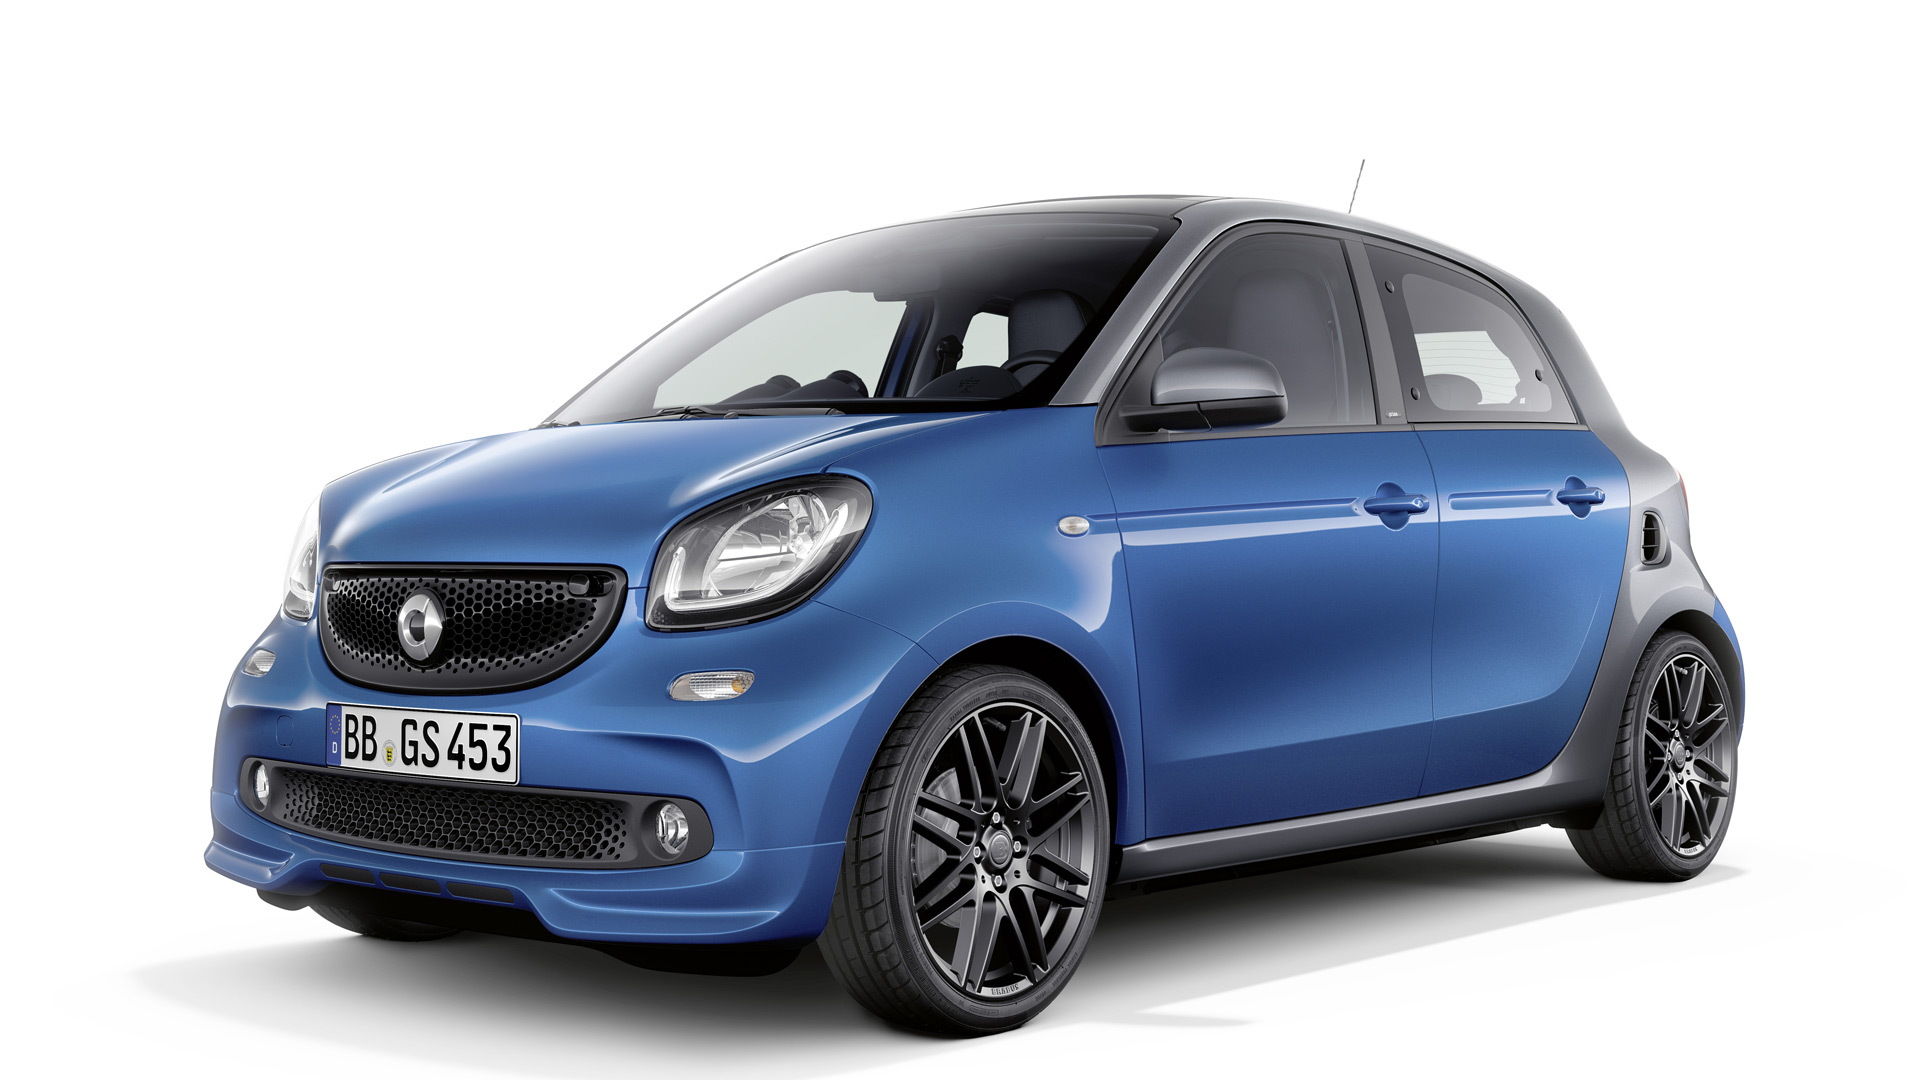 2017 Smart ForFour equipped with Brabus Sports package